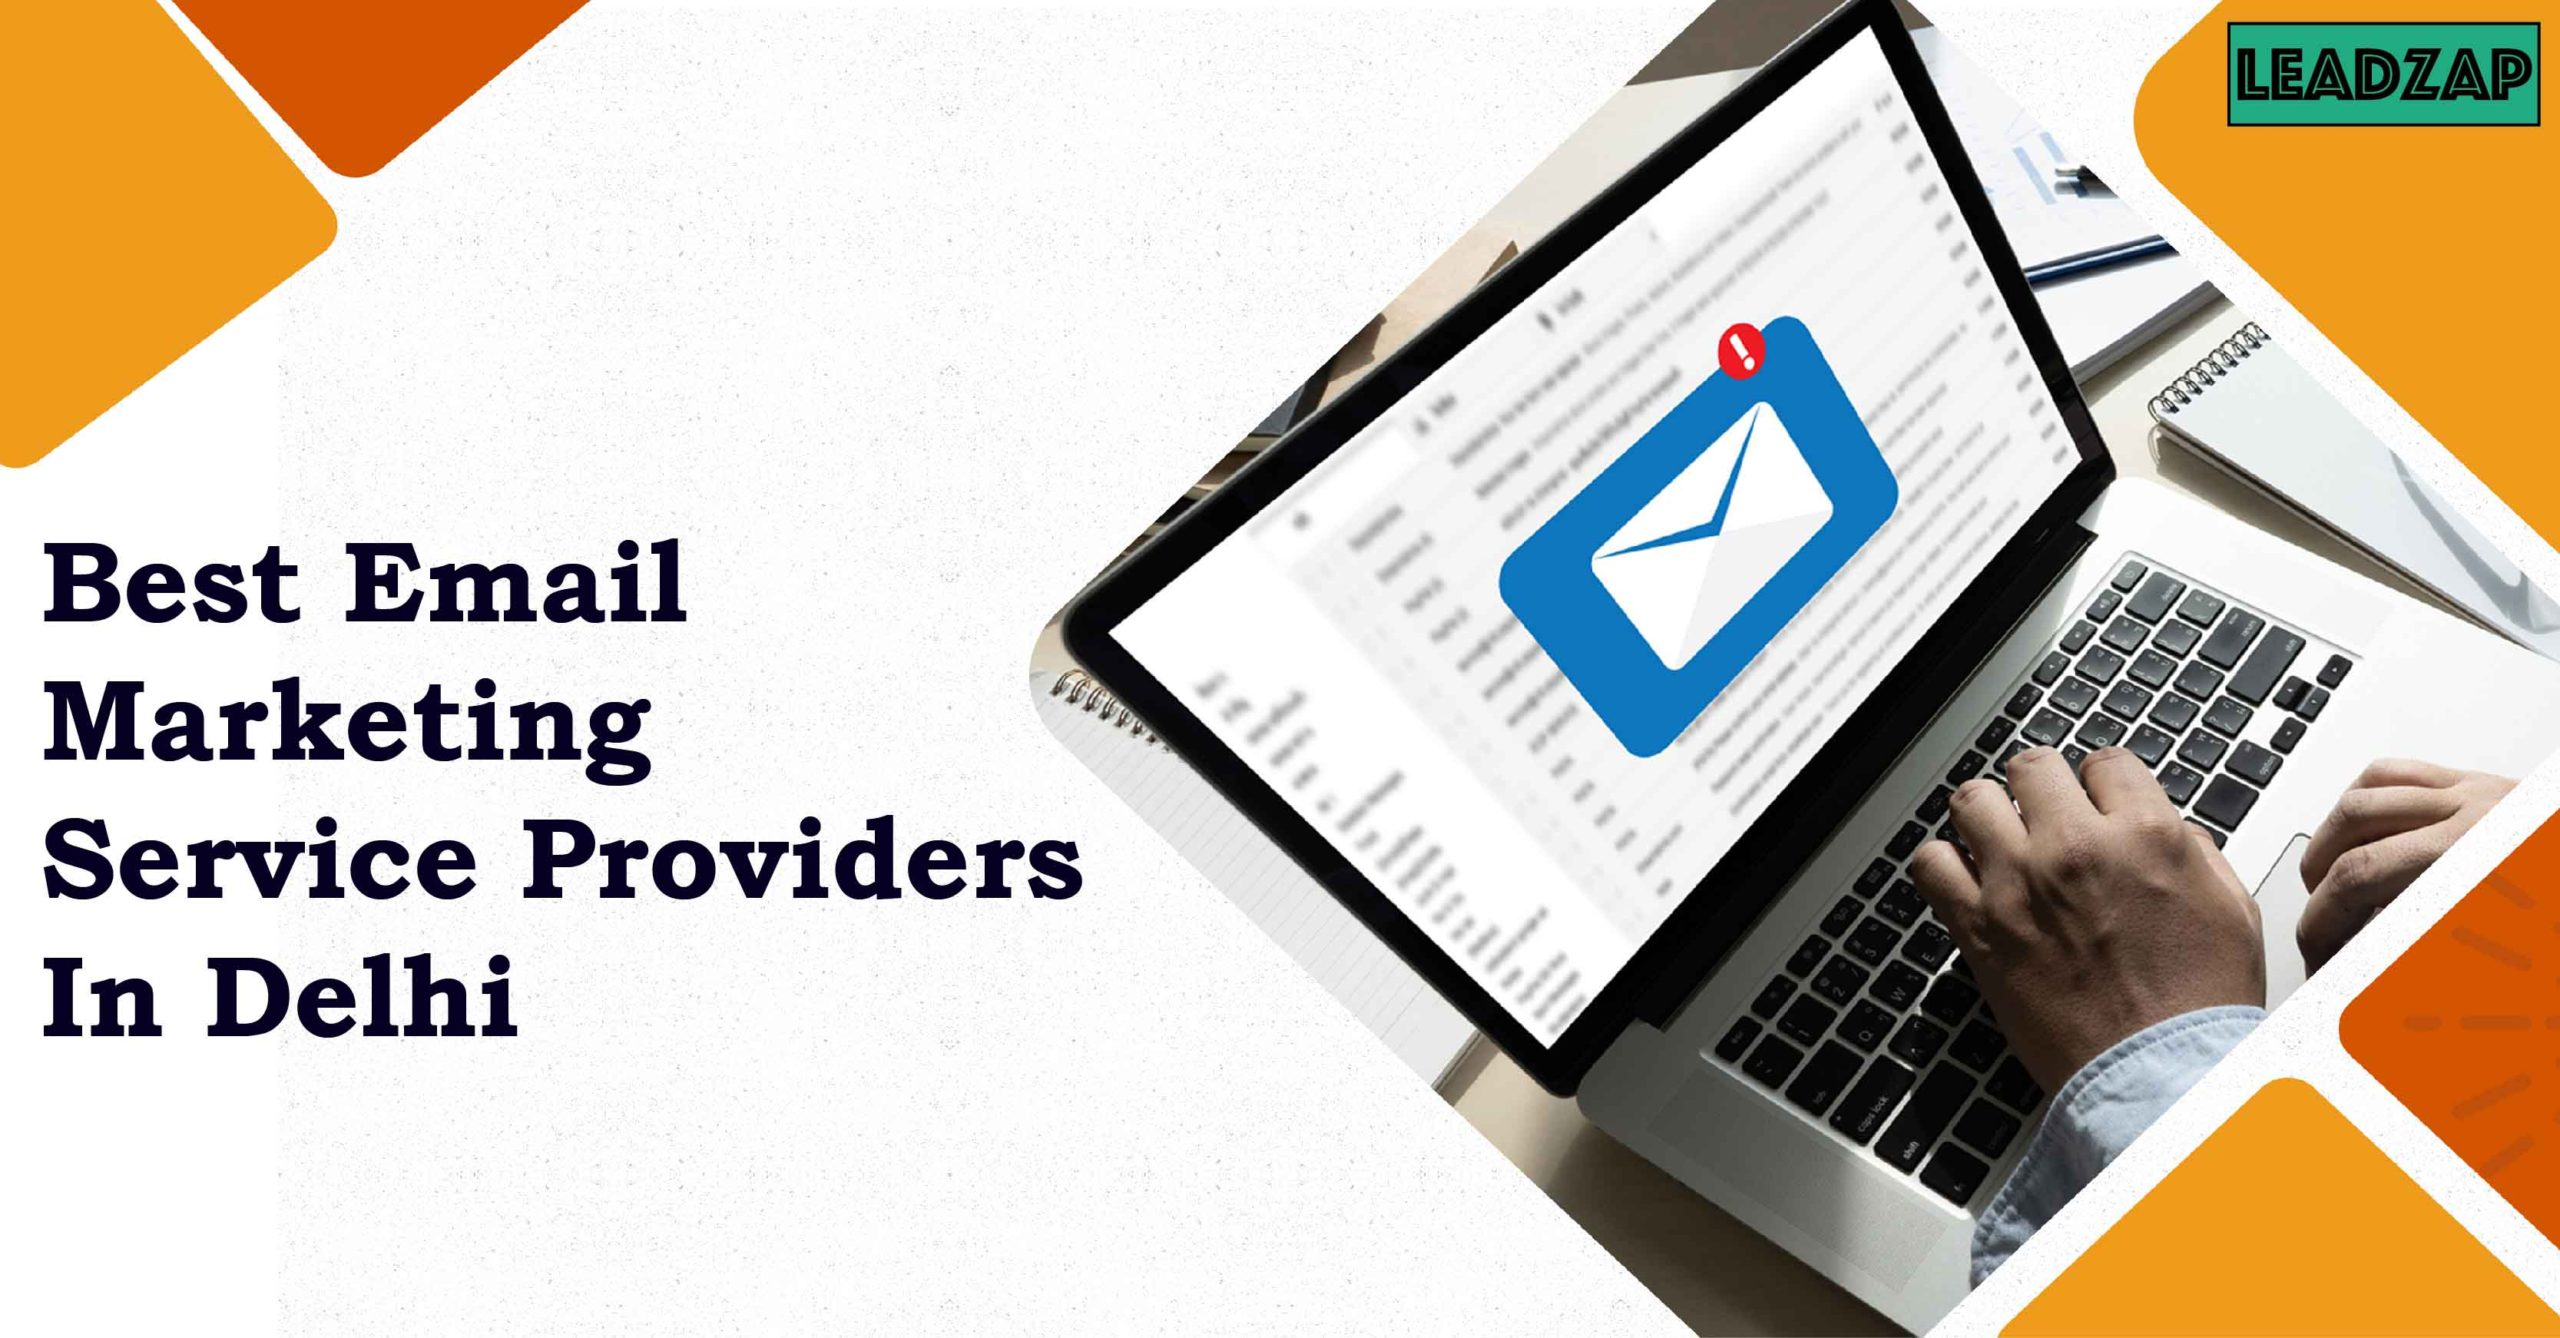 Best Email Marketing Service Providers In Delhi